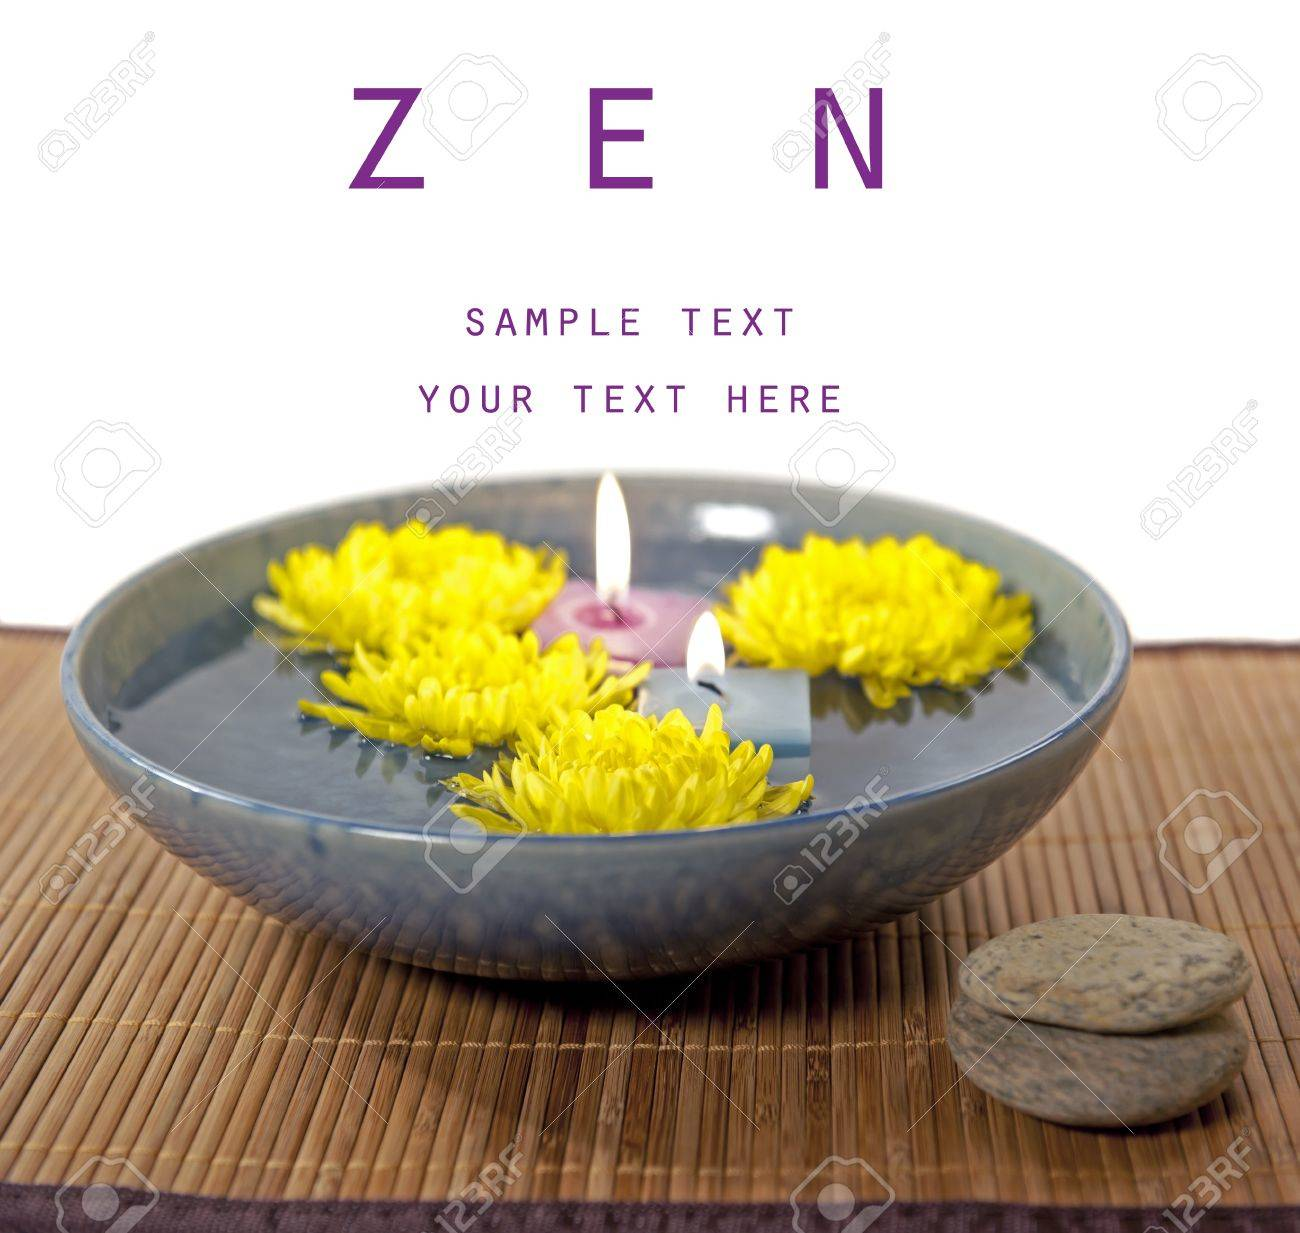 mums and aromatherapy candles in water - 8385427